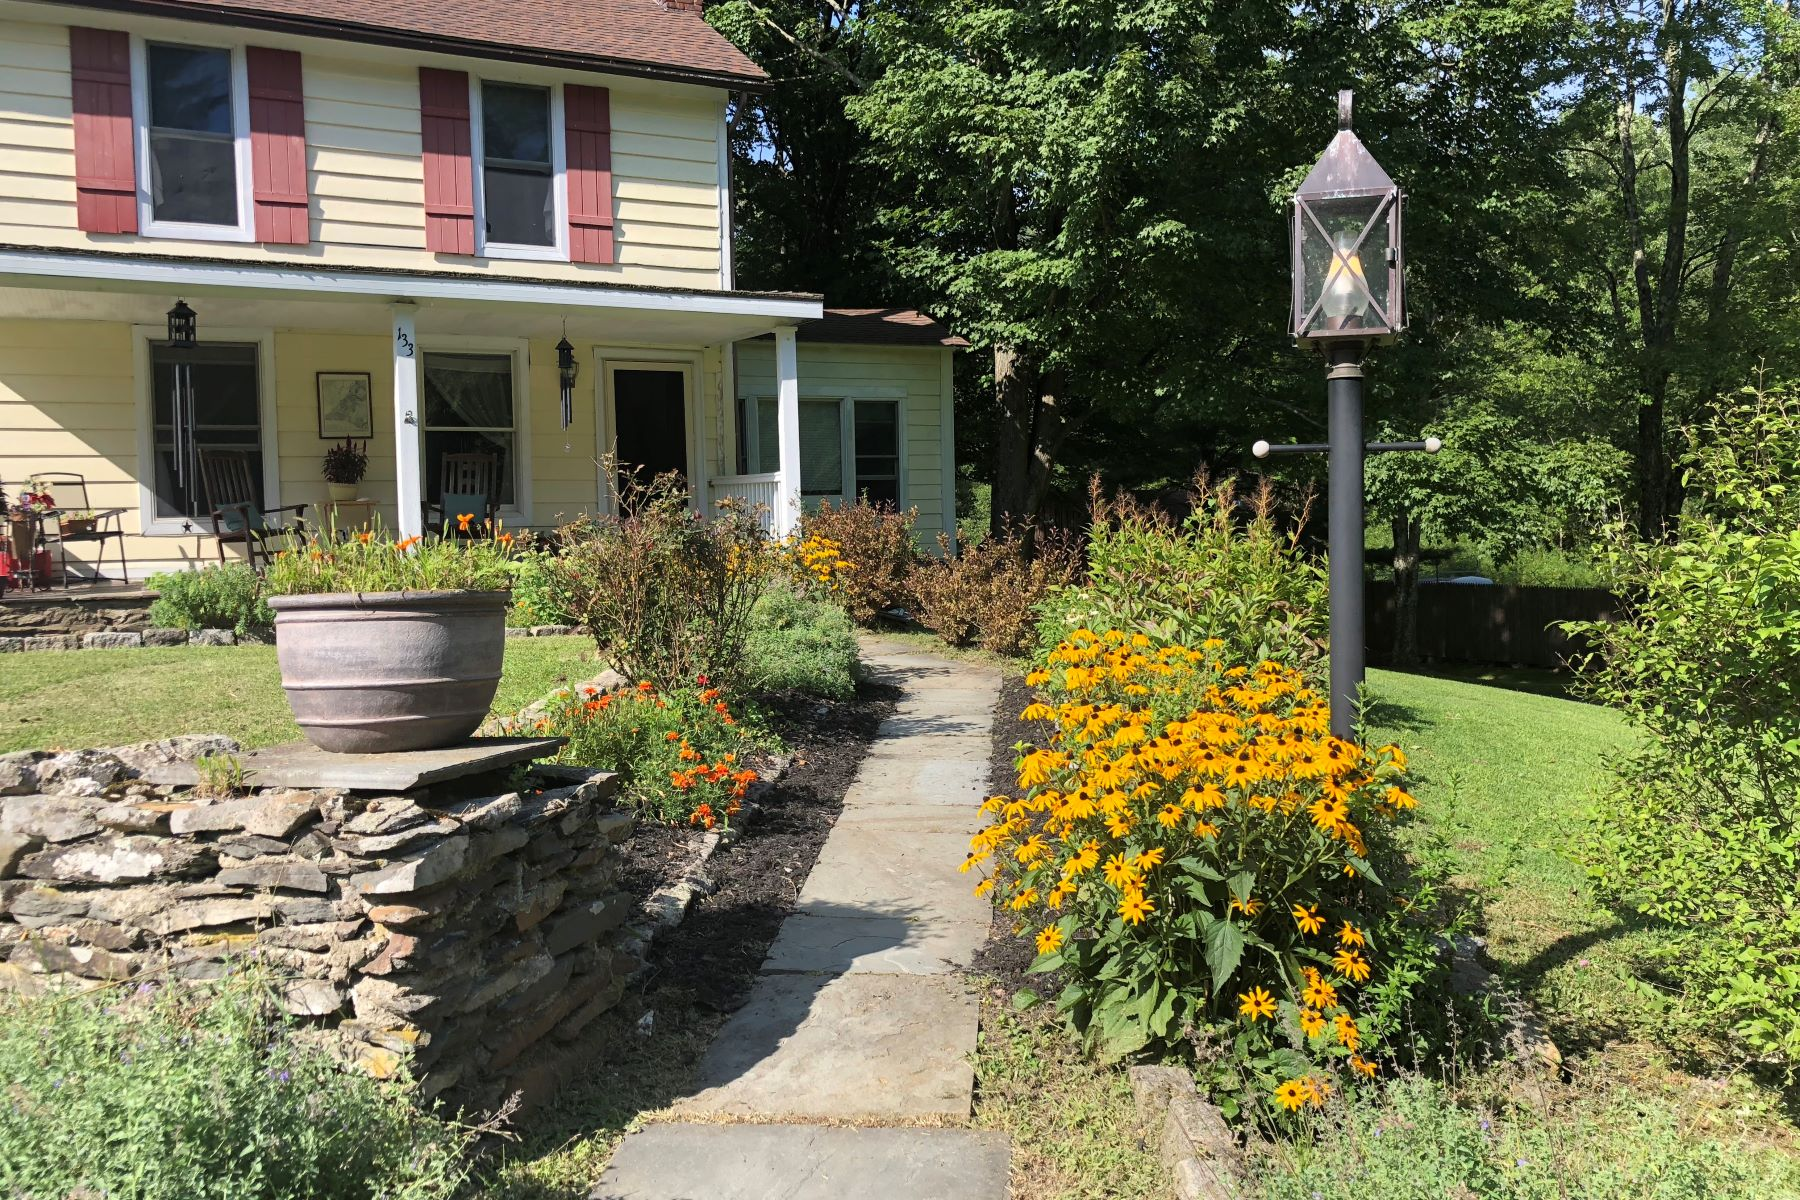 Single Family Homes for Active at Rhinebeck Farmhouse 131-133 Ackert Hook Rd Rhinebeck, New York 12572 United States